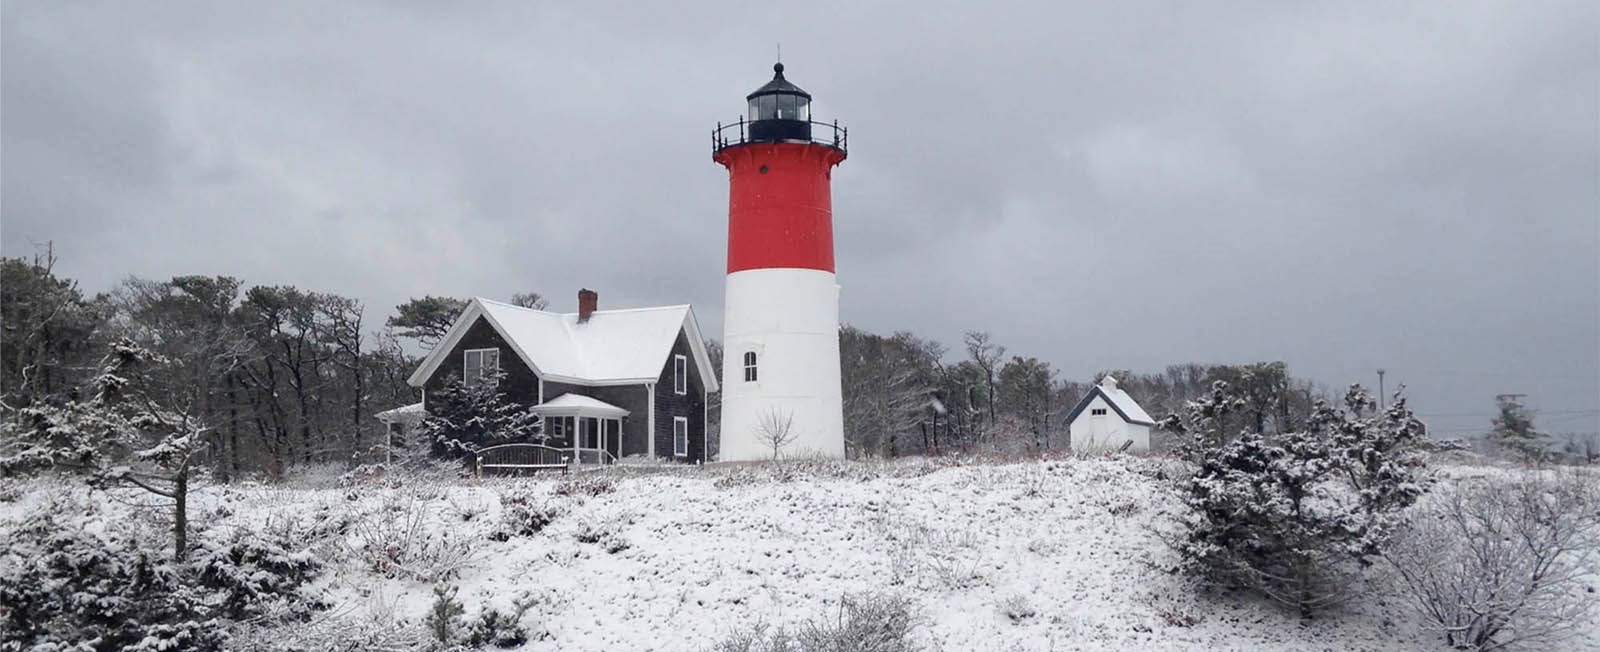 There are fun things to do on Cape Cod no matter what the season! Here are some great ways to enjoy the area during the winter!